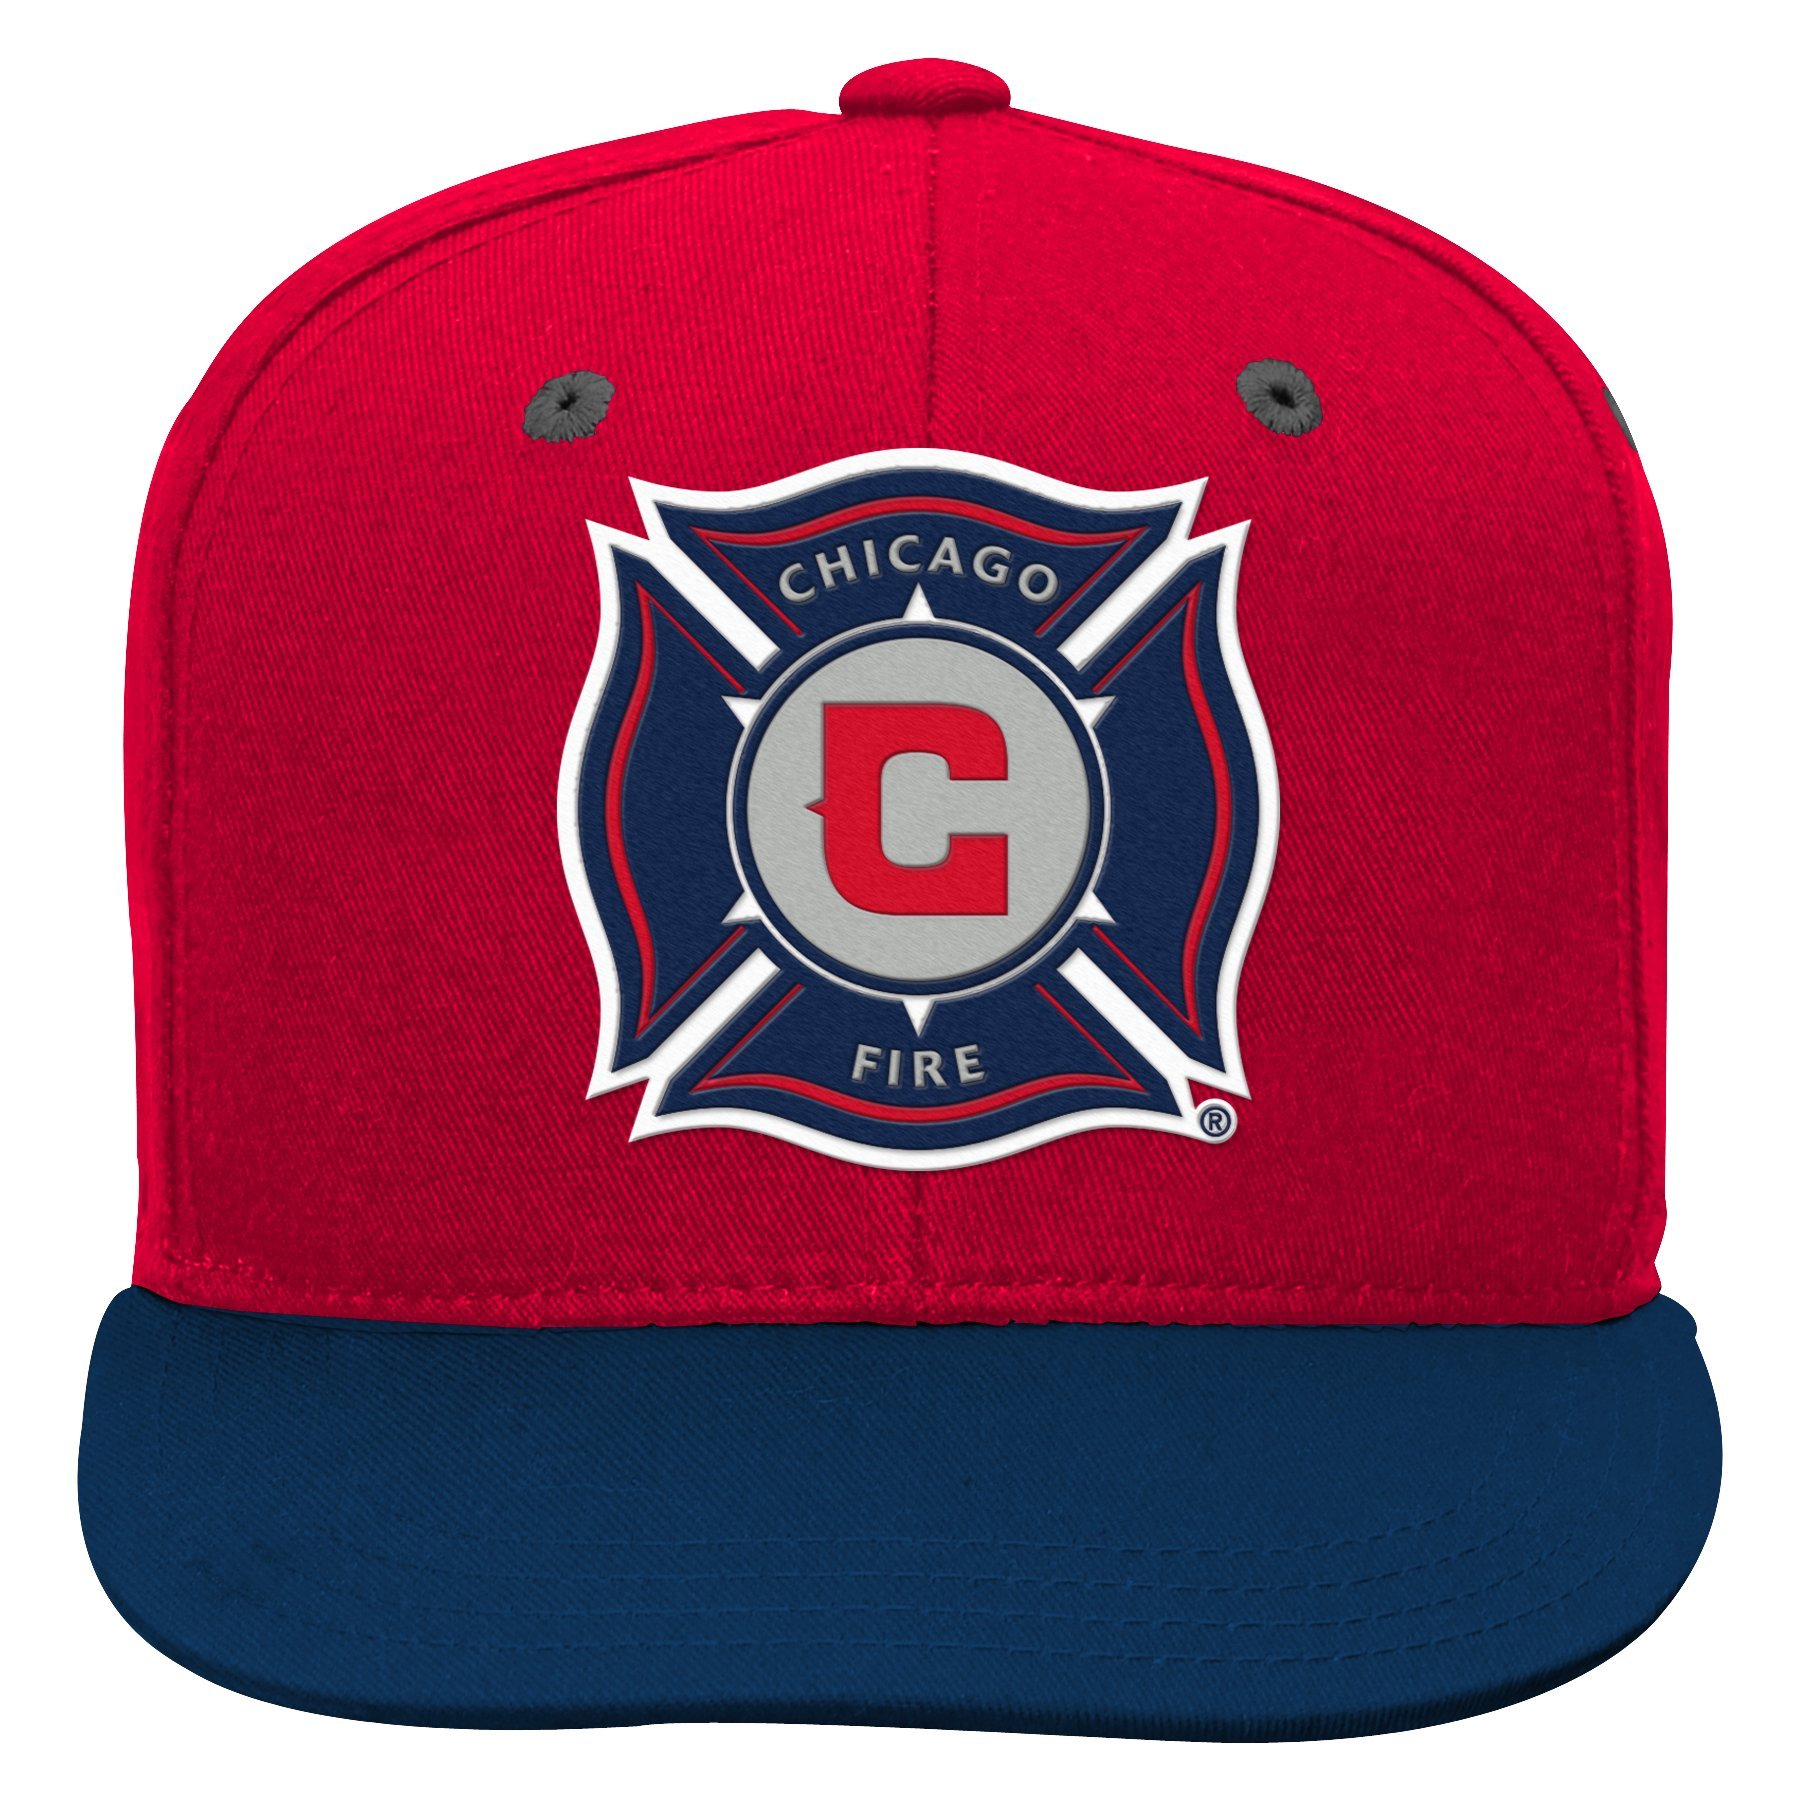 Outerstuff MLS Chicago Fire Boys Flat Visor Snapback, Red, One Size (8)